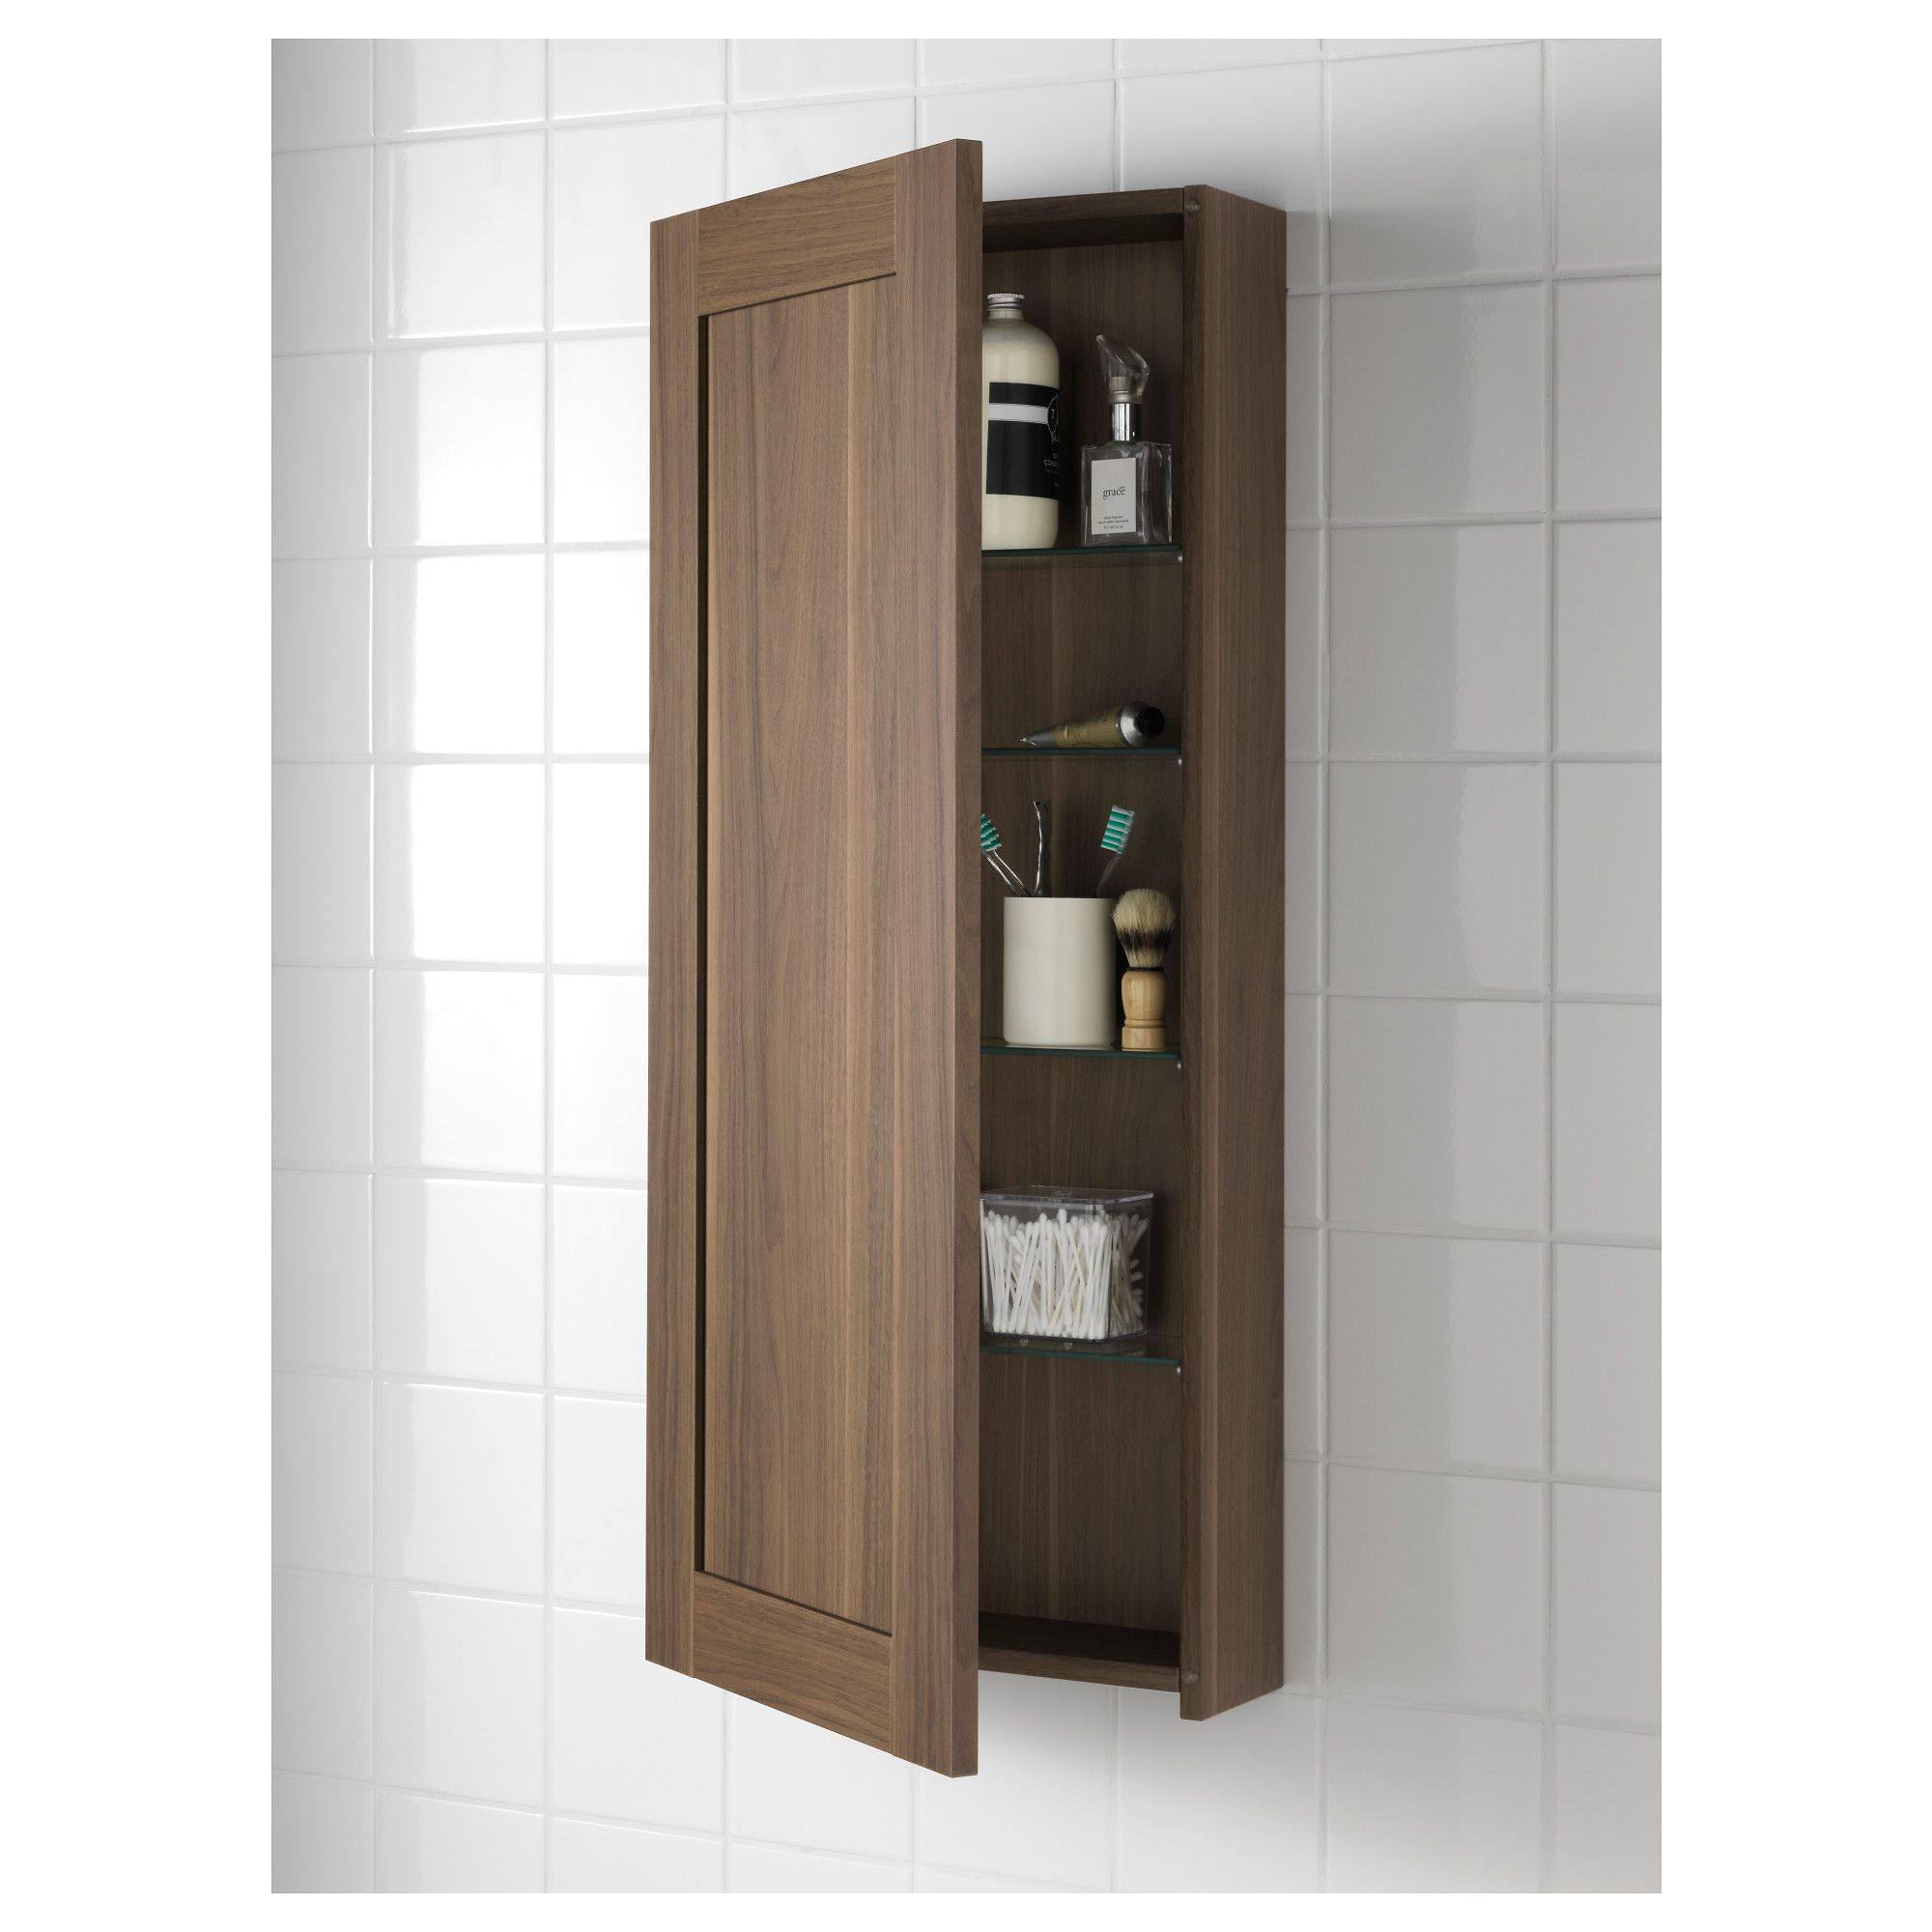 Tremendous Godmorgon Wall Cabinet With 1 Door Walnut Effect Ikea Interior Design Ideas Pimpapslepicentreinfo